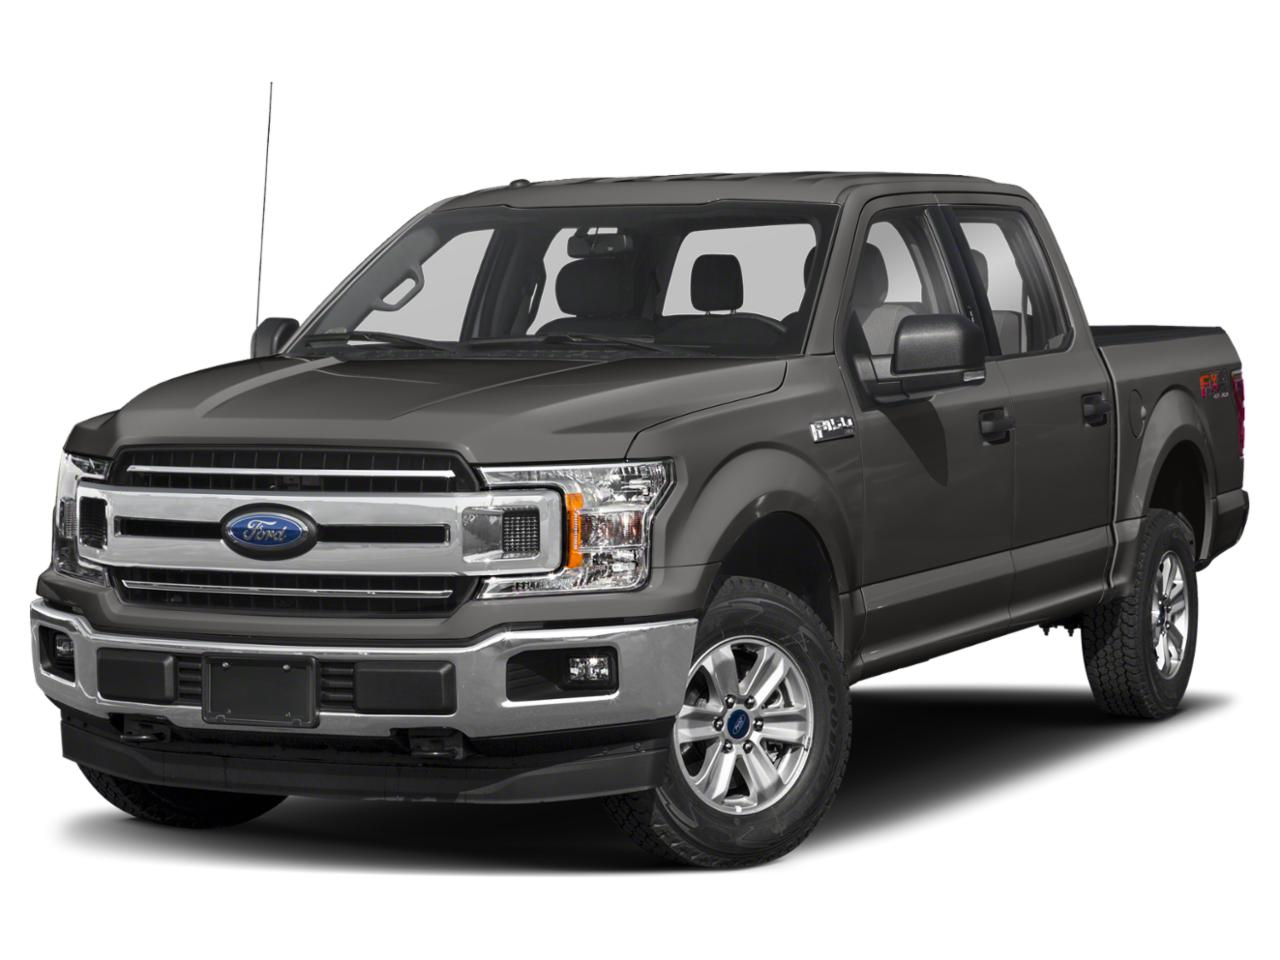 2019 Ford F-150 Vehicle Photo in Gainesville, FL 32609